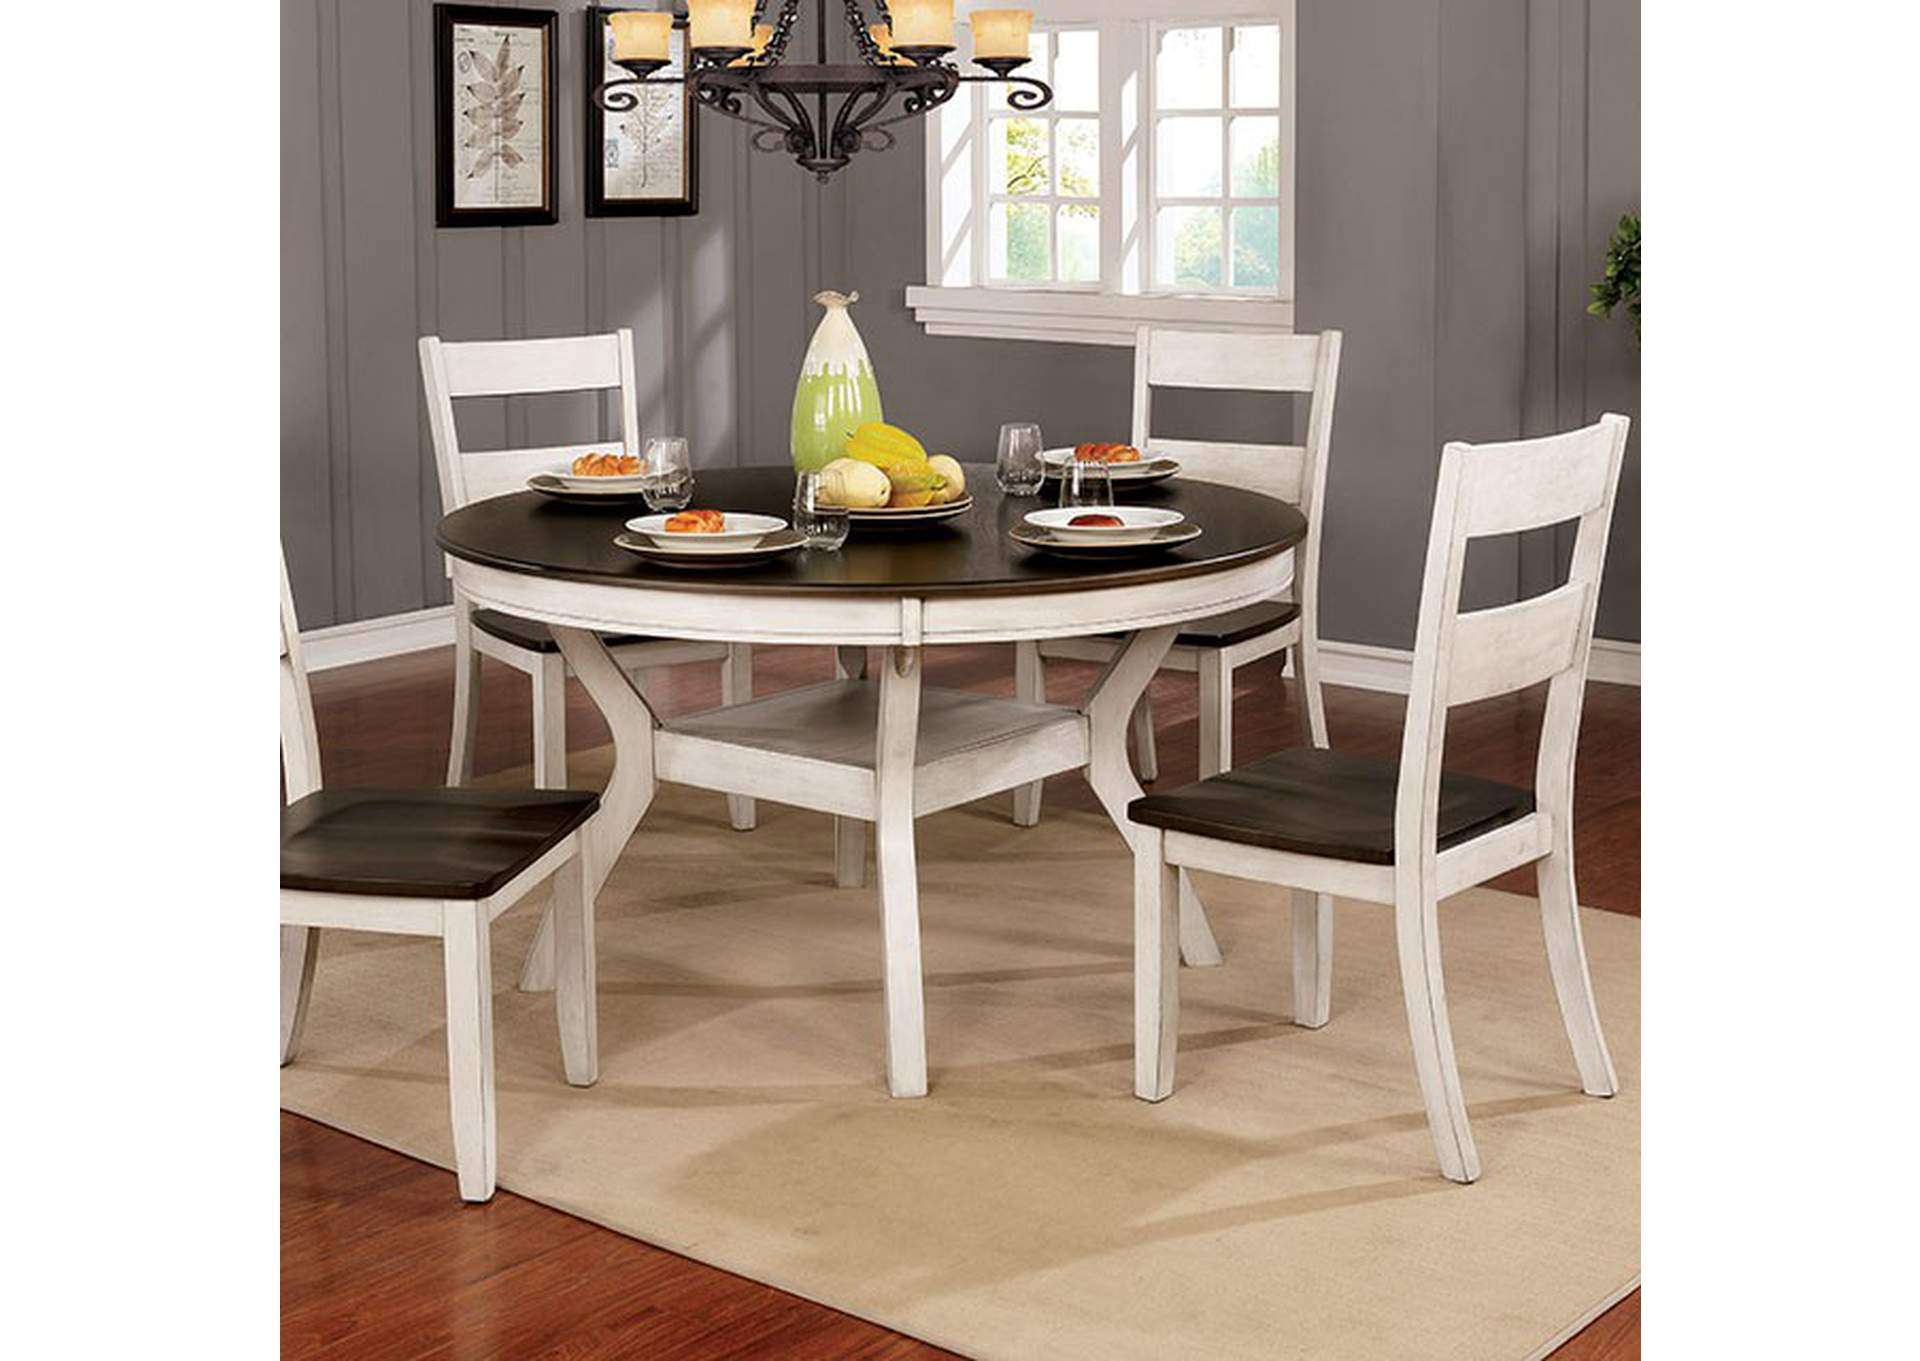 Juniper Antique White Dining Table,Furniture of America